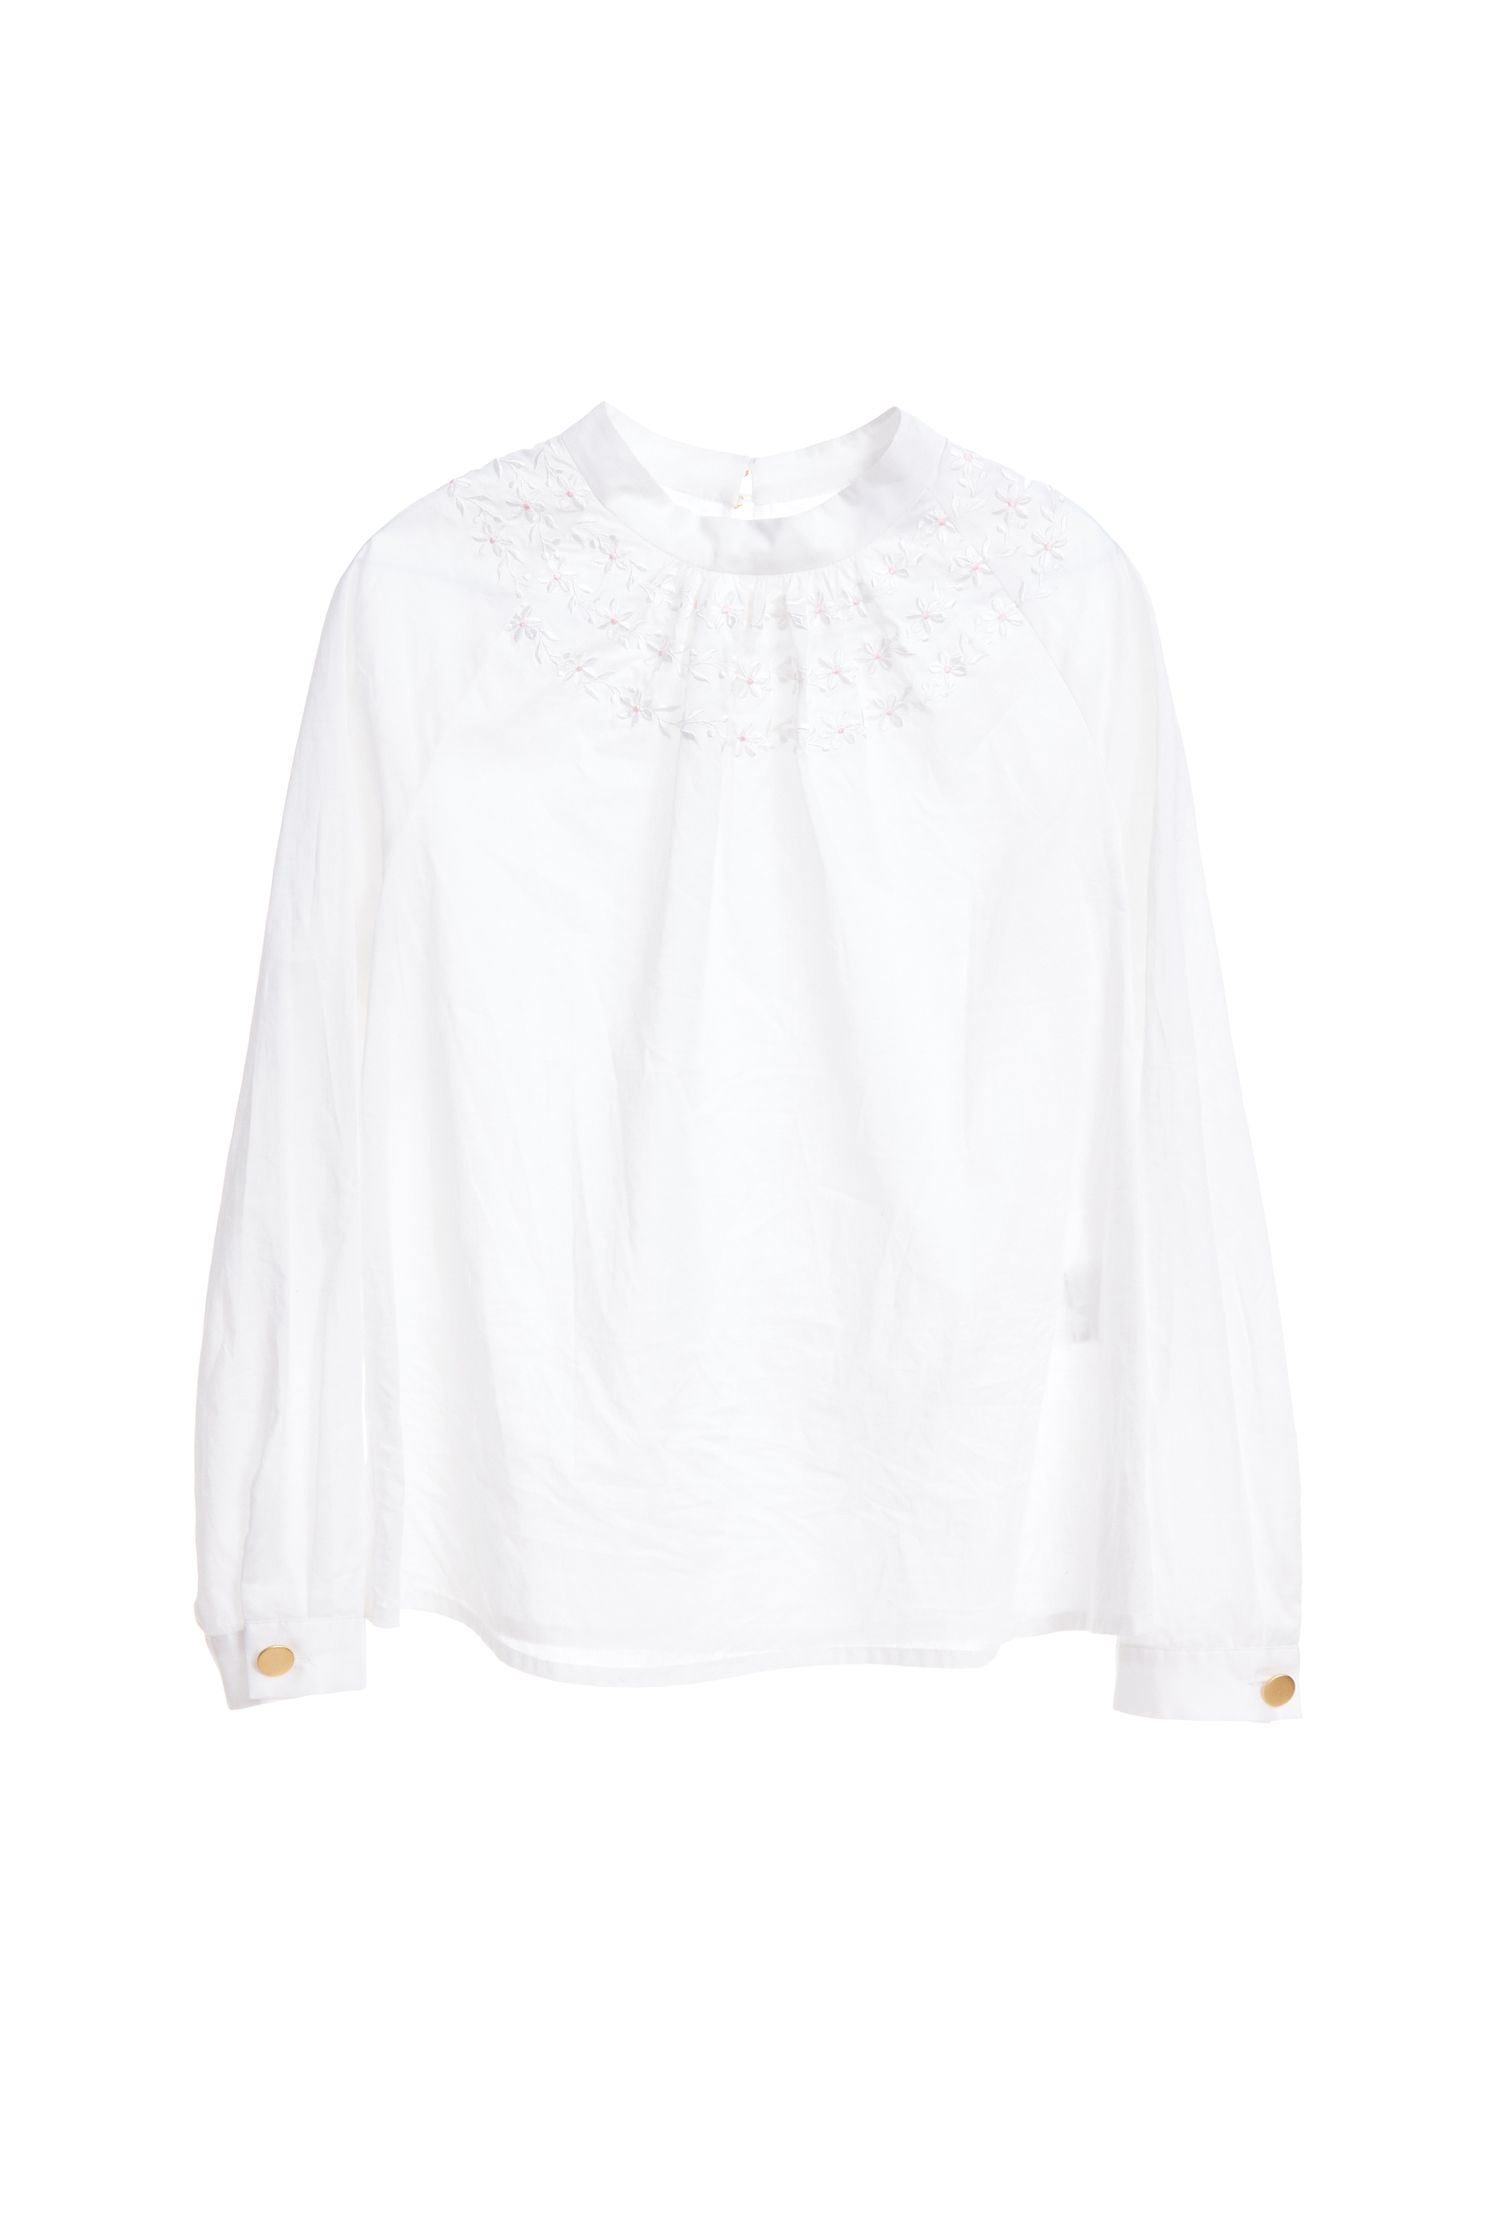 Embroidered fashion top,top,embroidery,embroideredtop,whitetop,cotton,embroidered,embroideredtop,blouse,longsleevetop